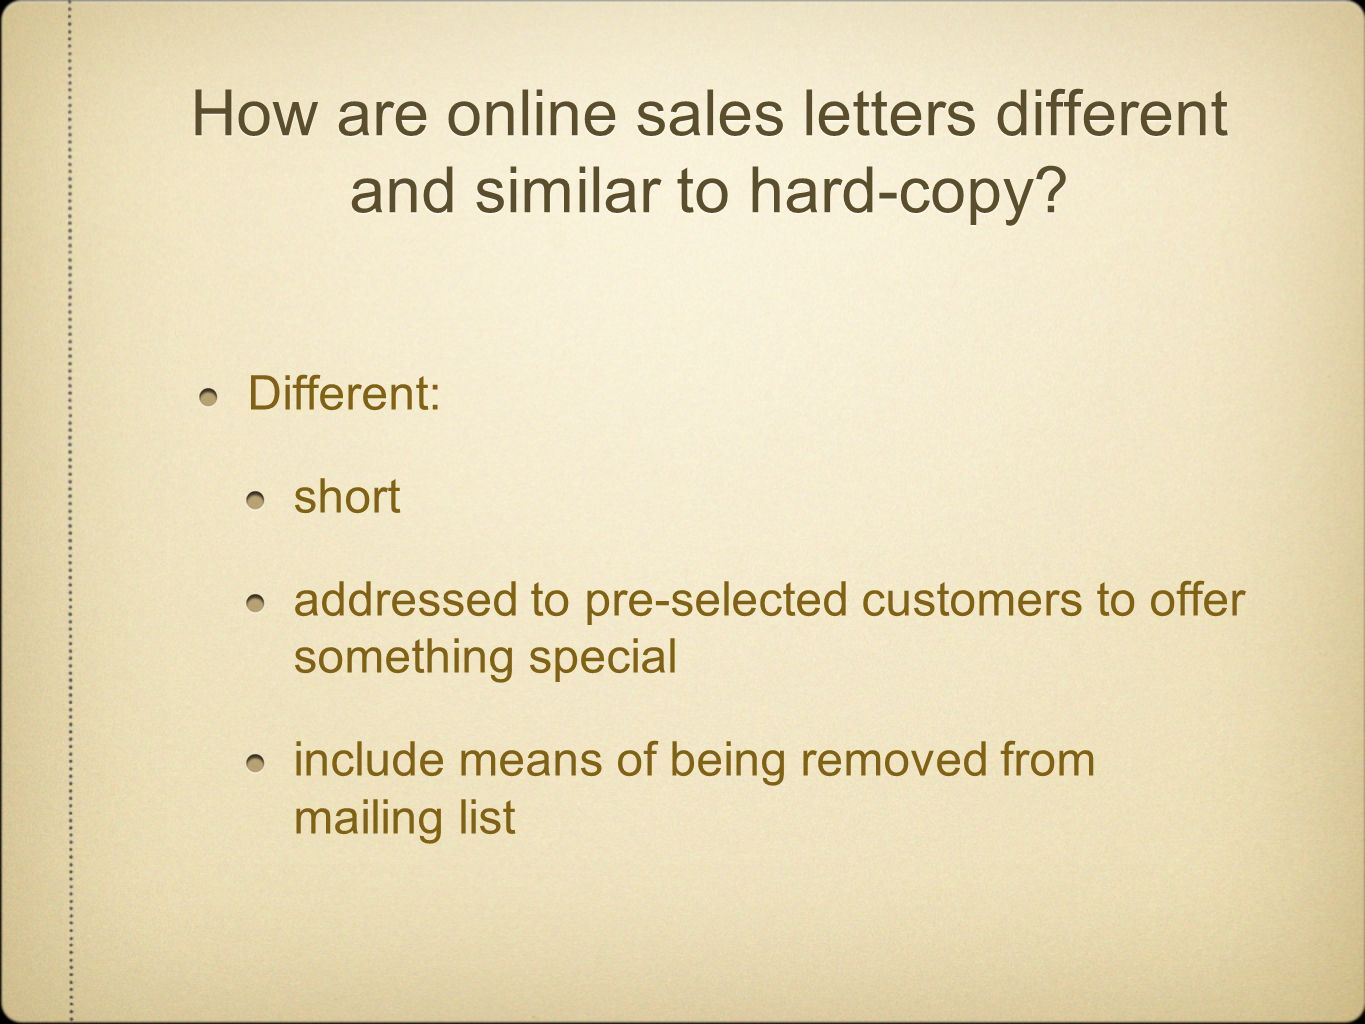 How are online sales letters different and similar to hard-copy? Different: short addressed to pre-selected customers to offer something special inclu